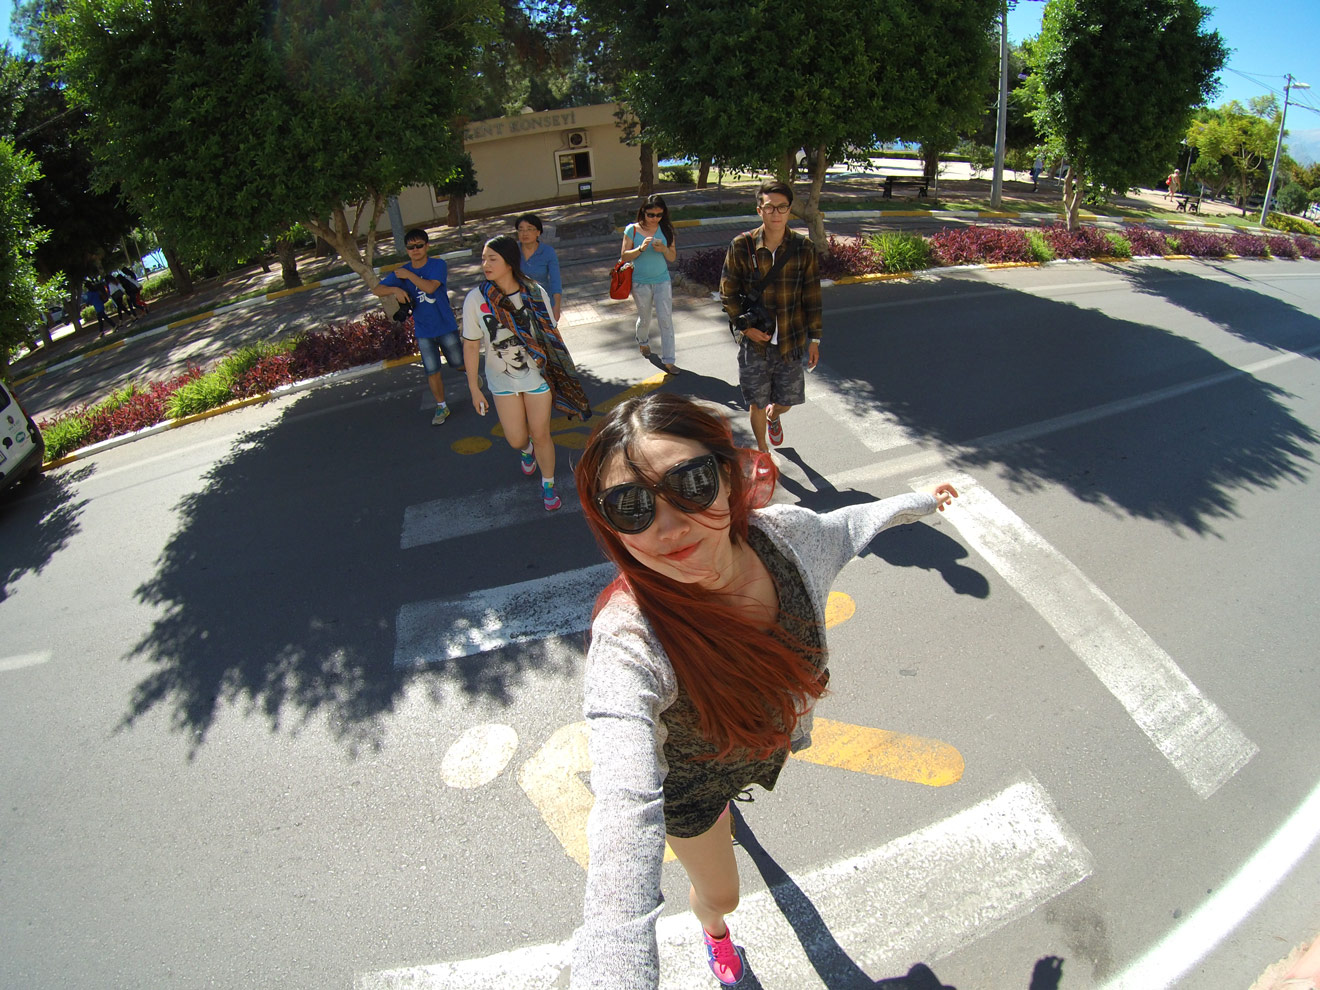 Xiaomi Mi Pro Action Camera Photo Sample Of Friends Taking A Selfie